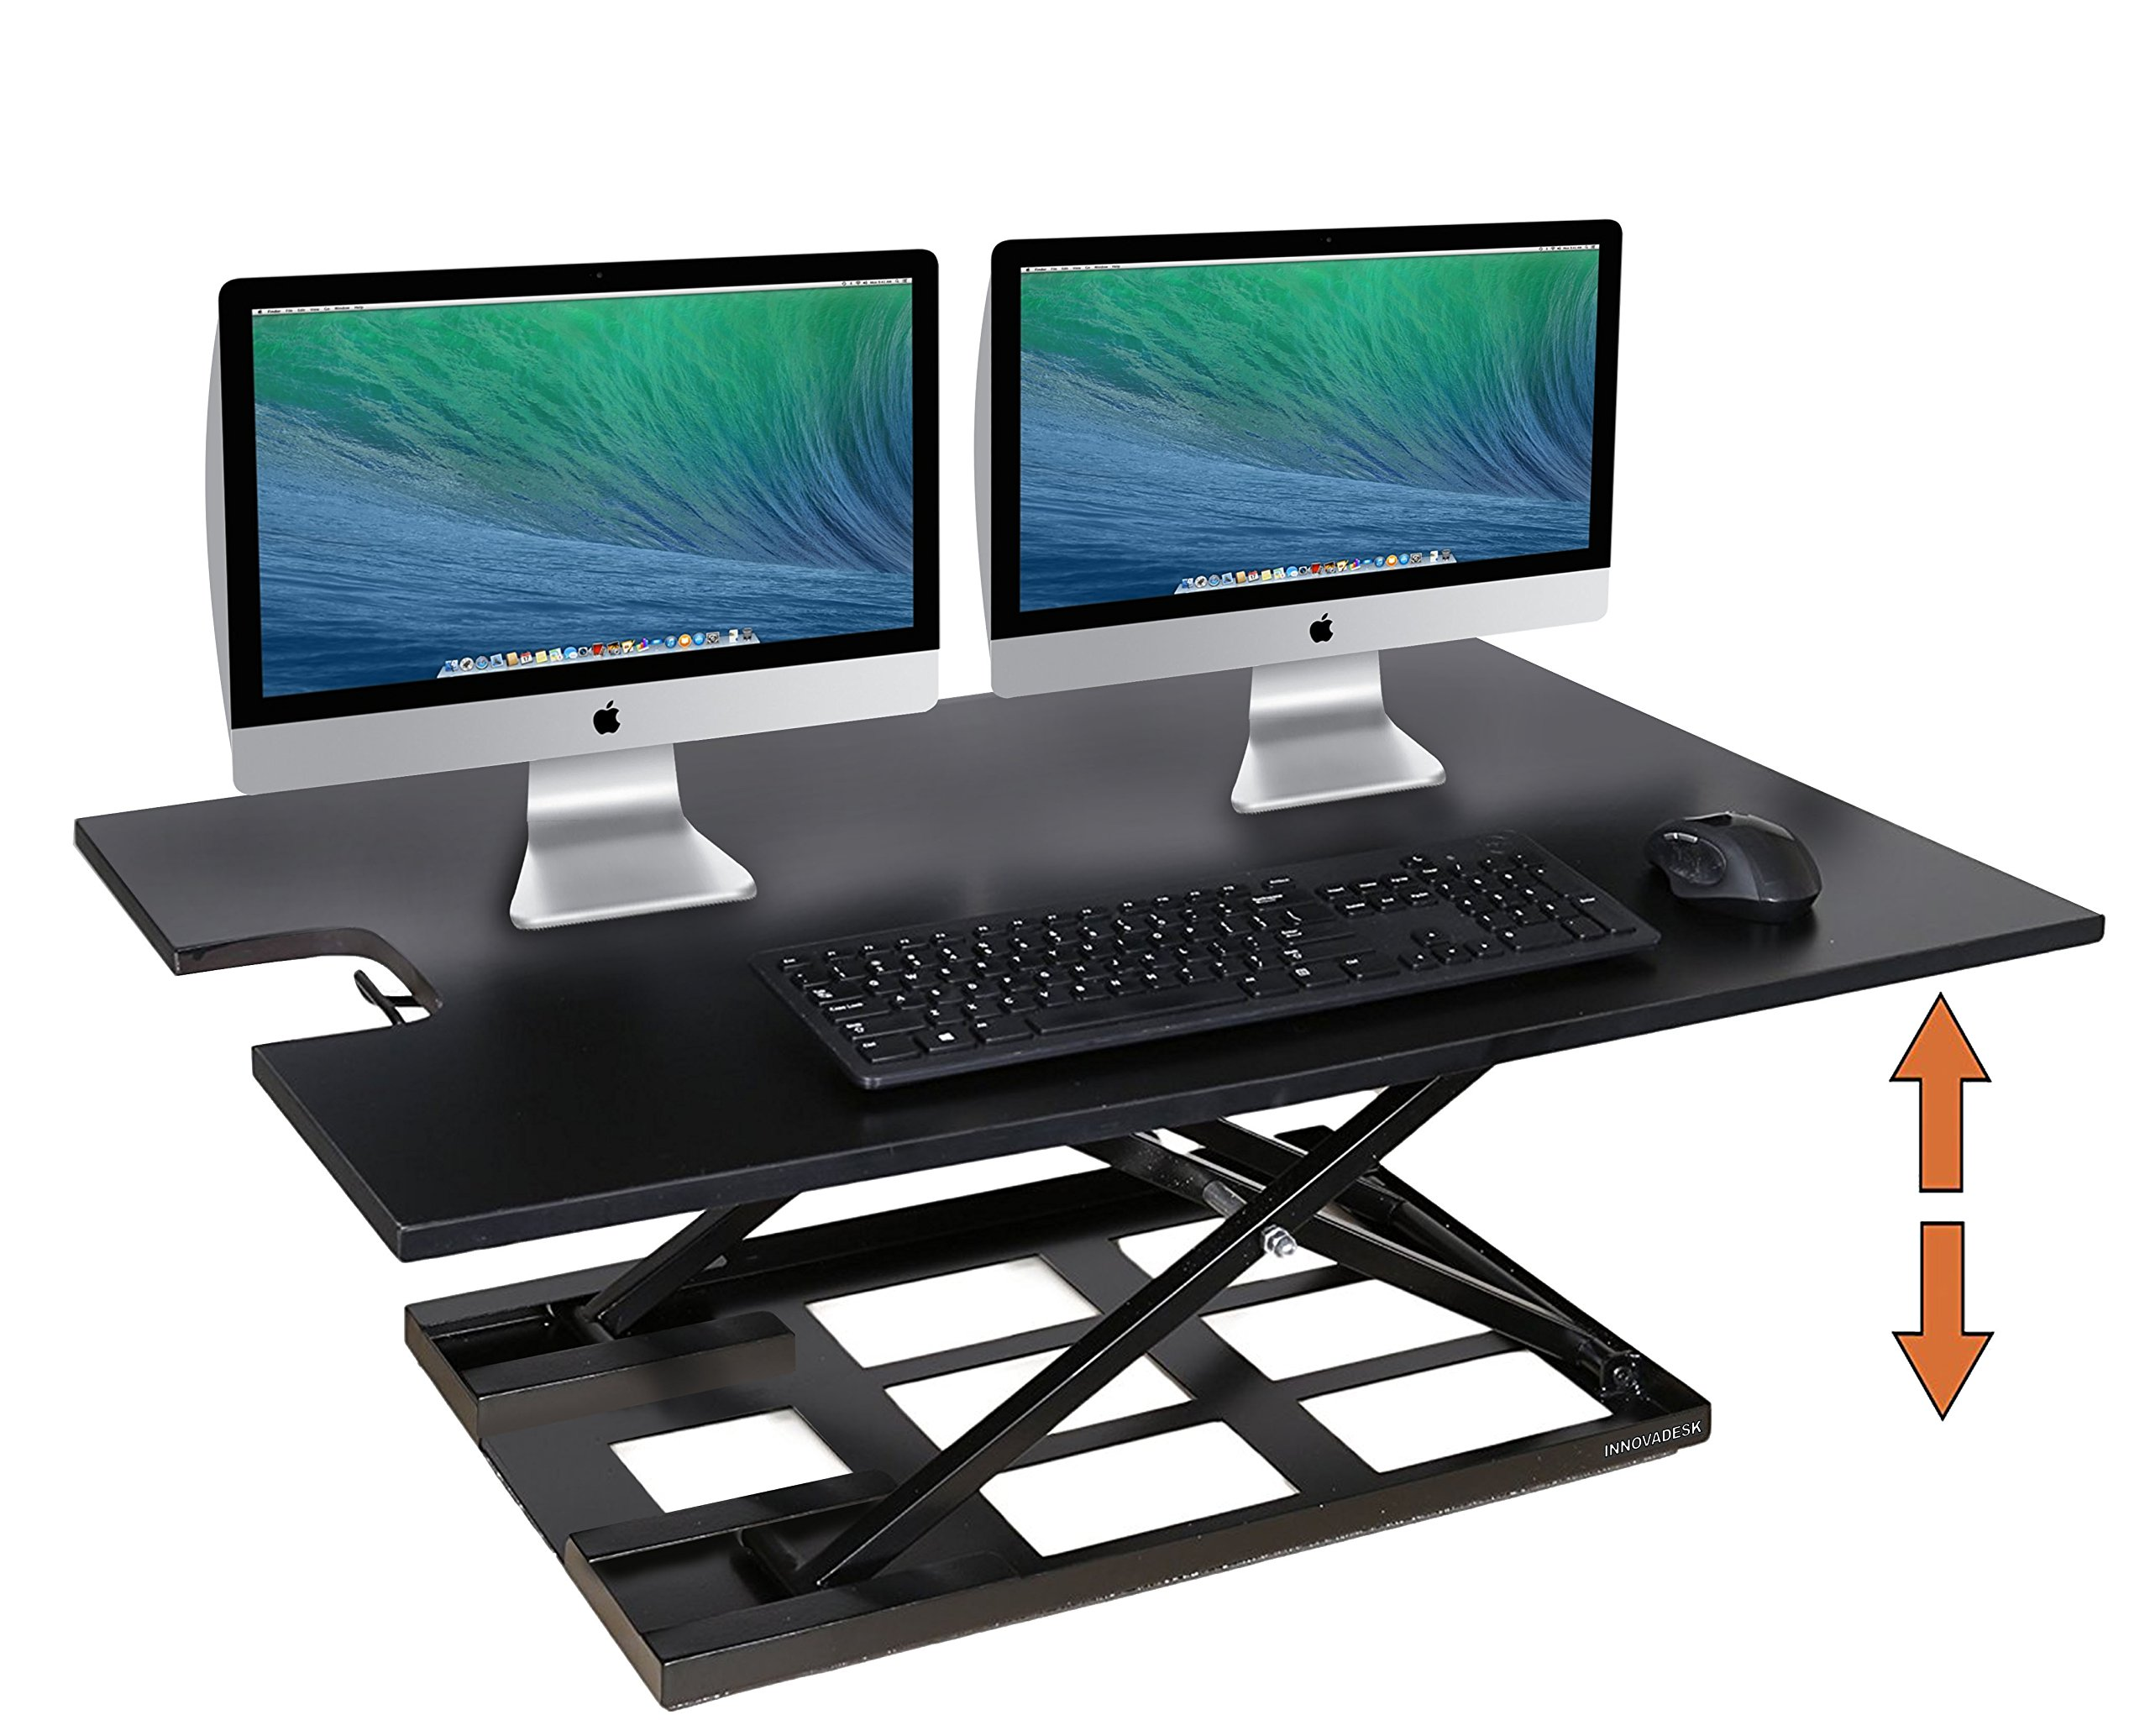 Standing Desk Converter-INNOVADESK 36-24 inches- Basic Height Adjustable desk – Sit Stand Desk Converter - Laptop Desk Riser- The Best Adjustable Standing Desk- Preassembled desk (Black)